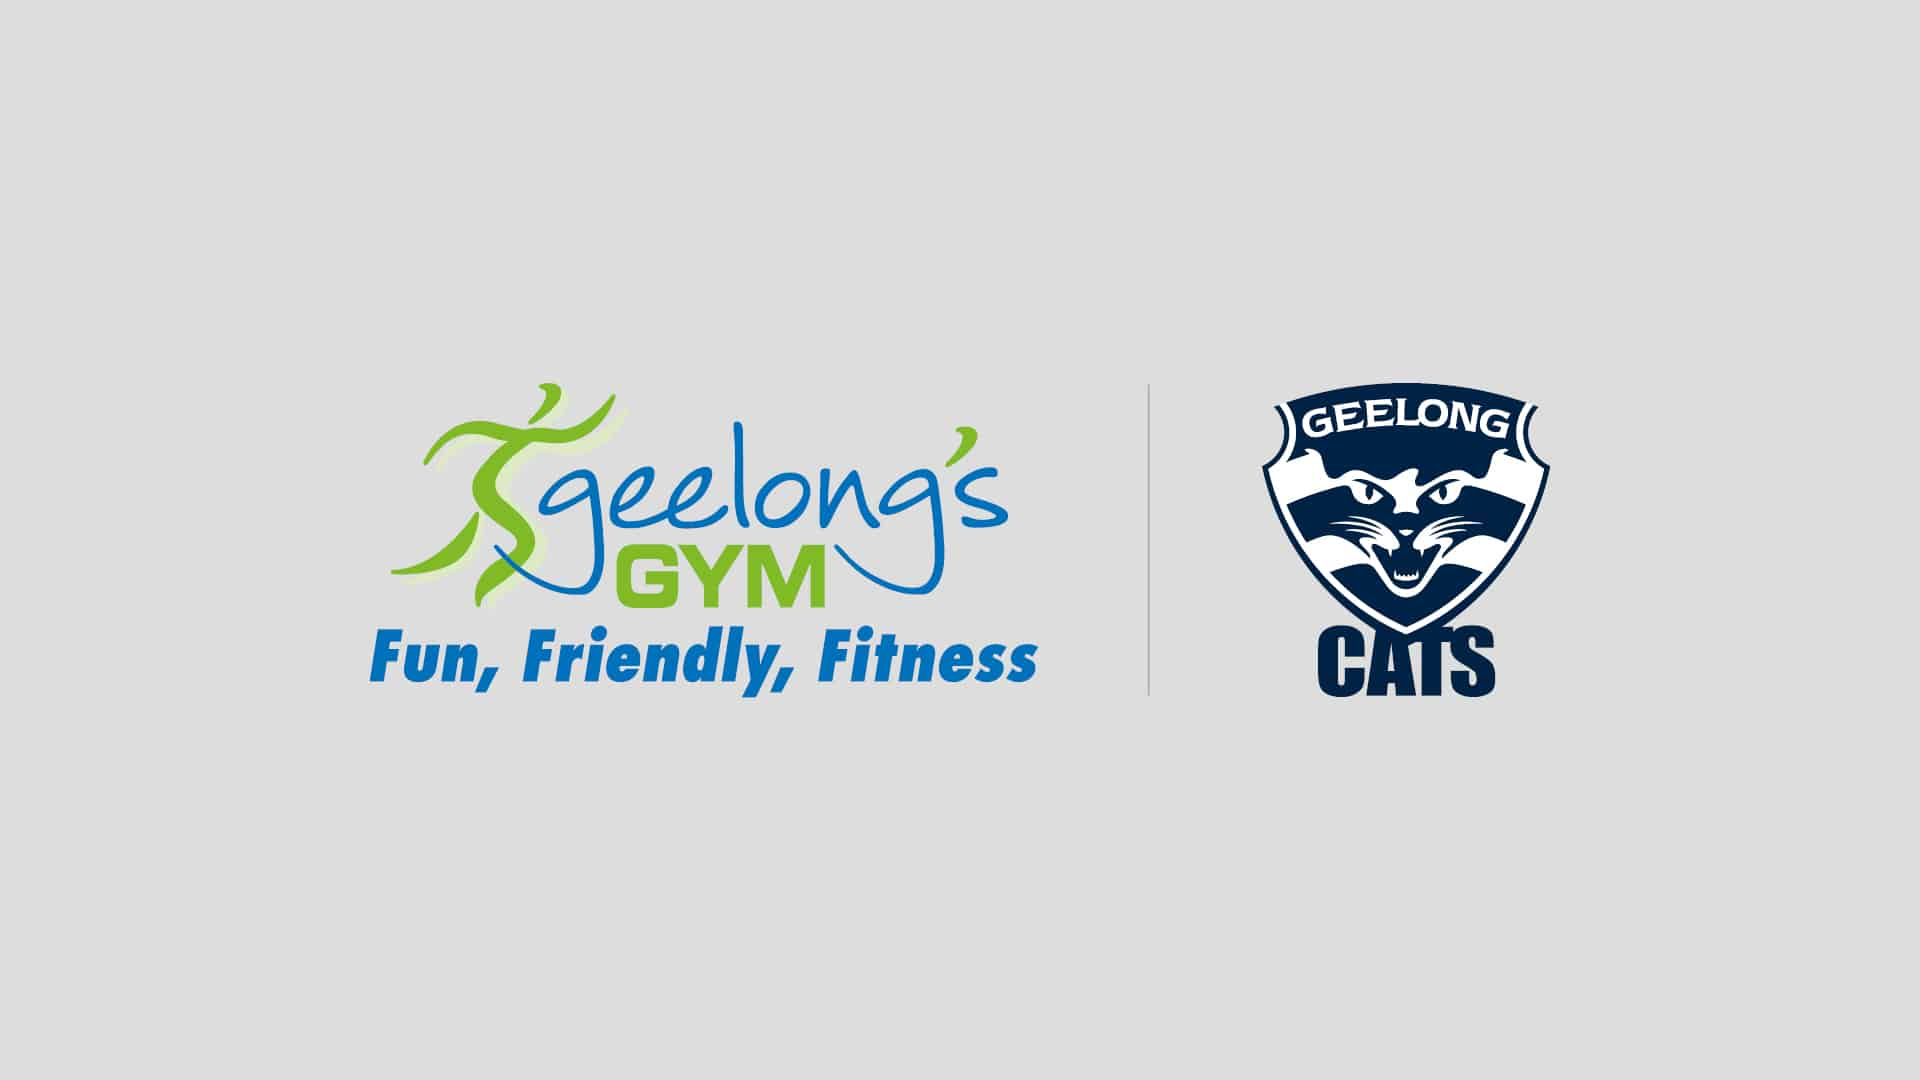 Geelong Cats to purchase Geelong's Gym